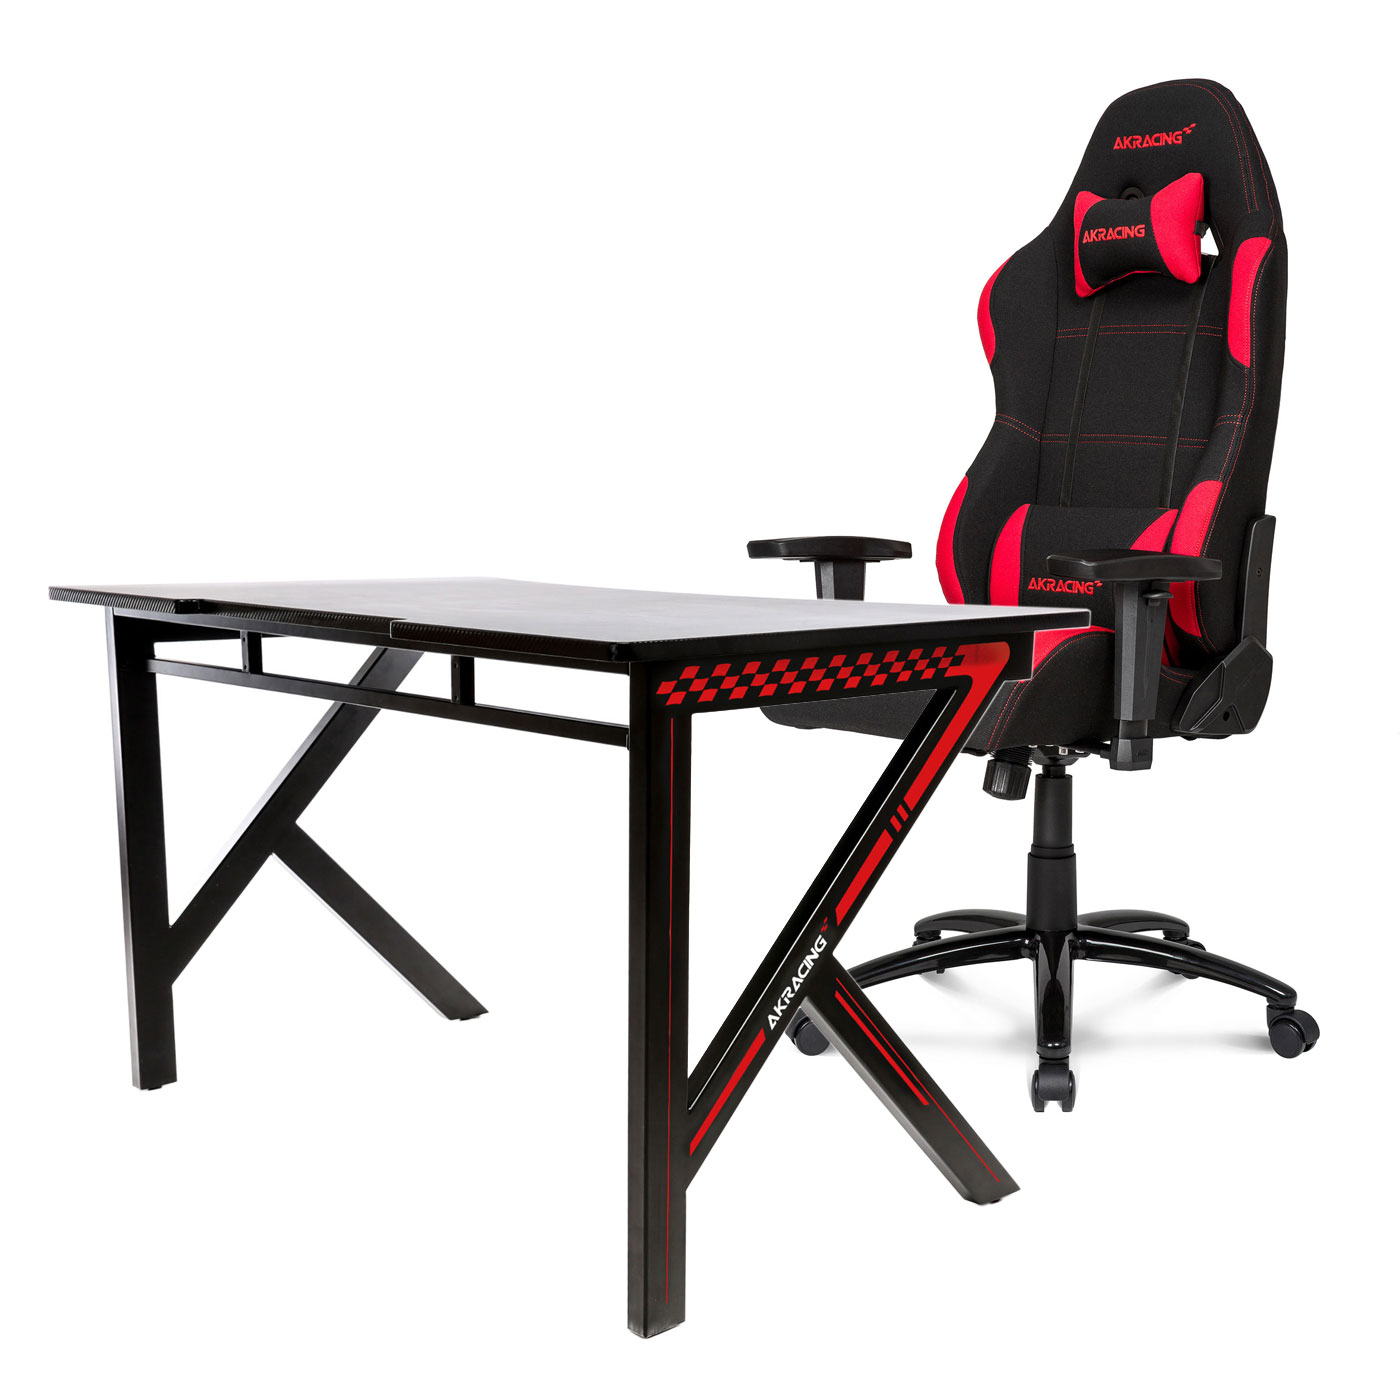 akracing gaming desk rouge fauteuil gamer akracing sur. Black Bedroom Furniture Sets. Home Design Ideas